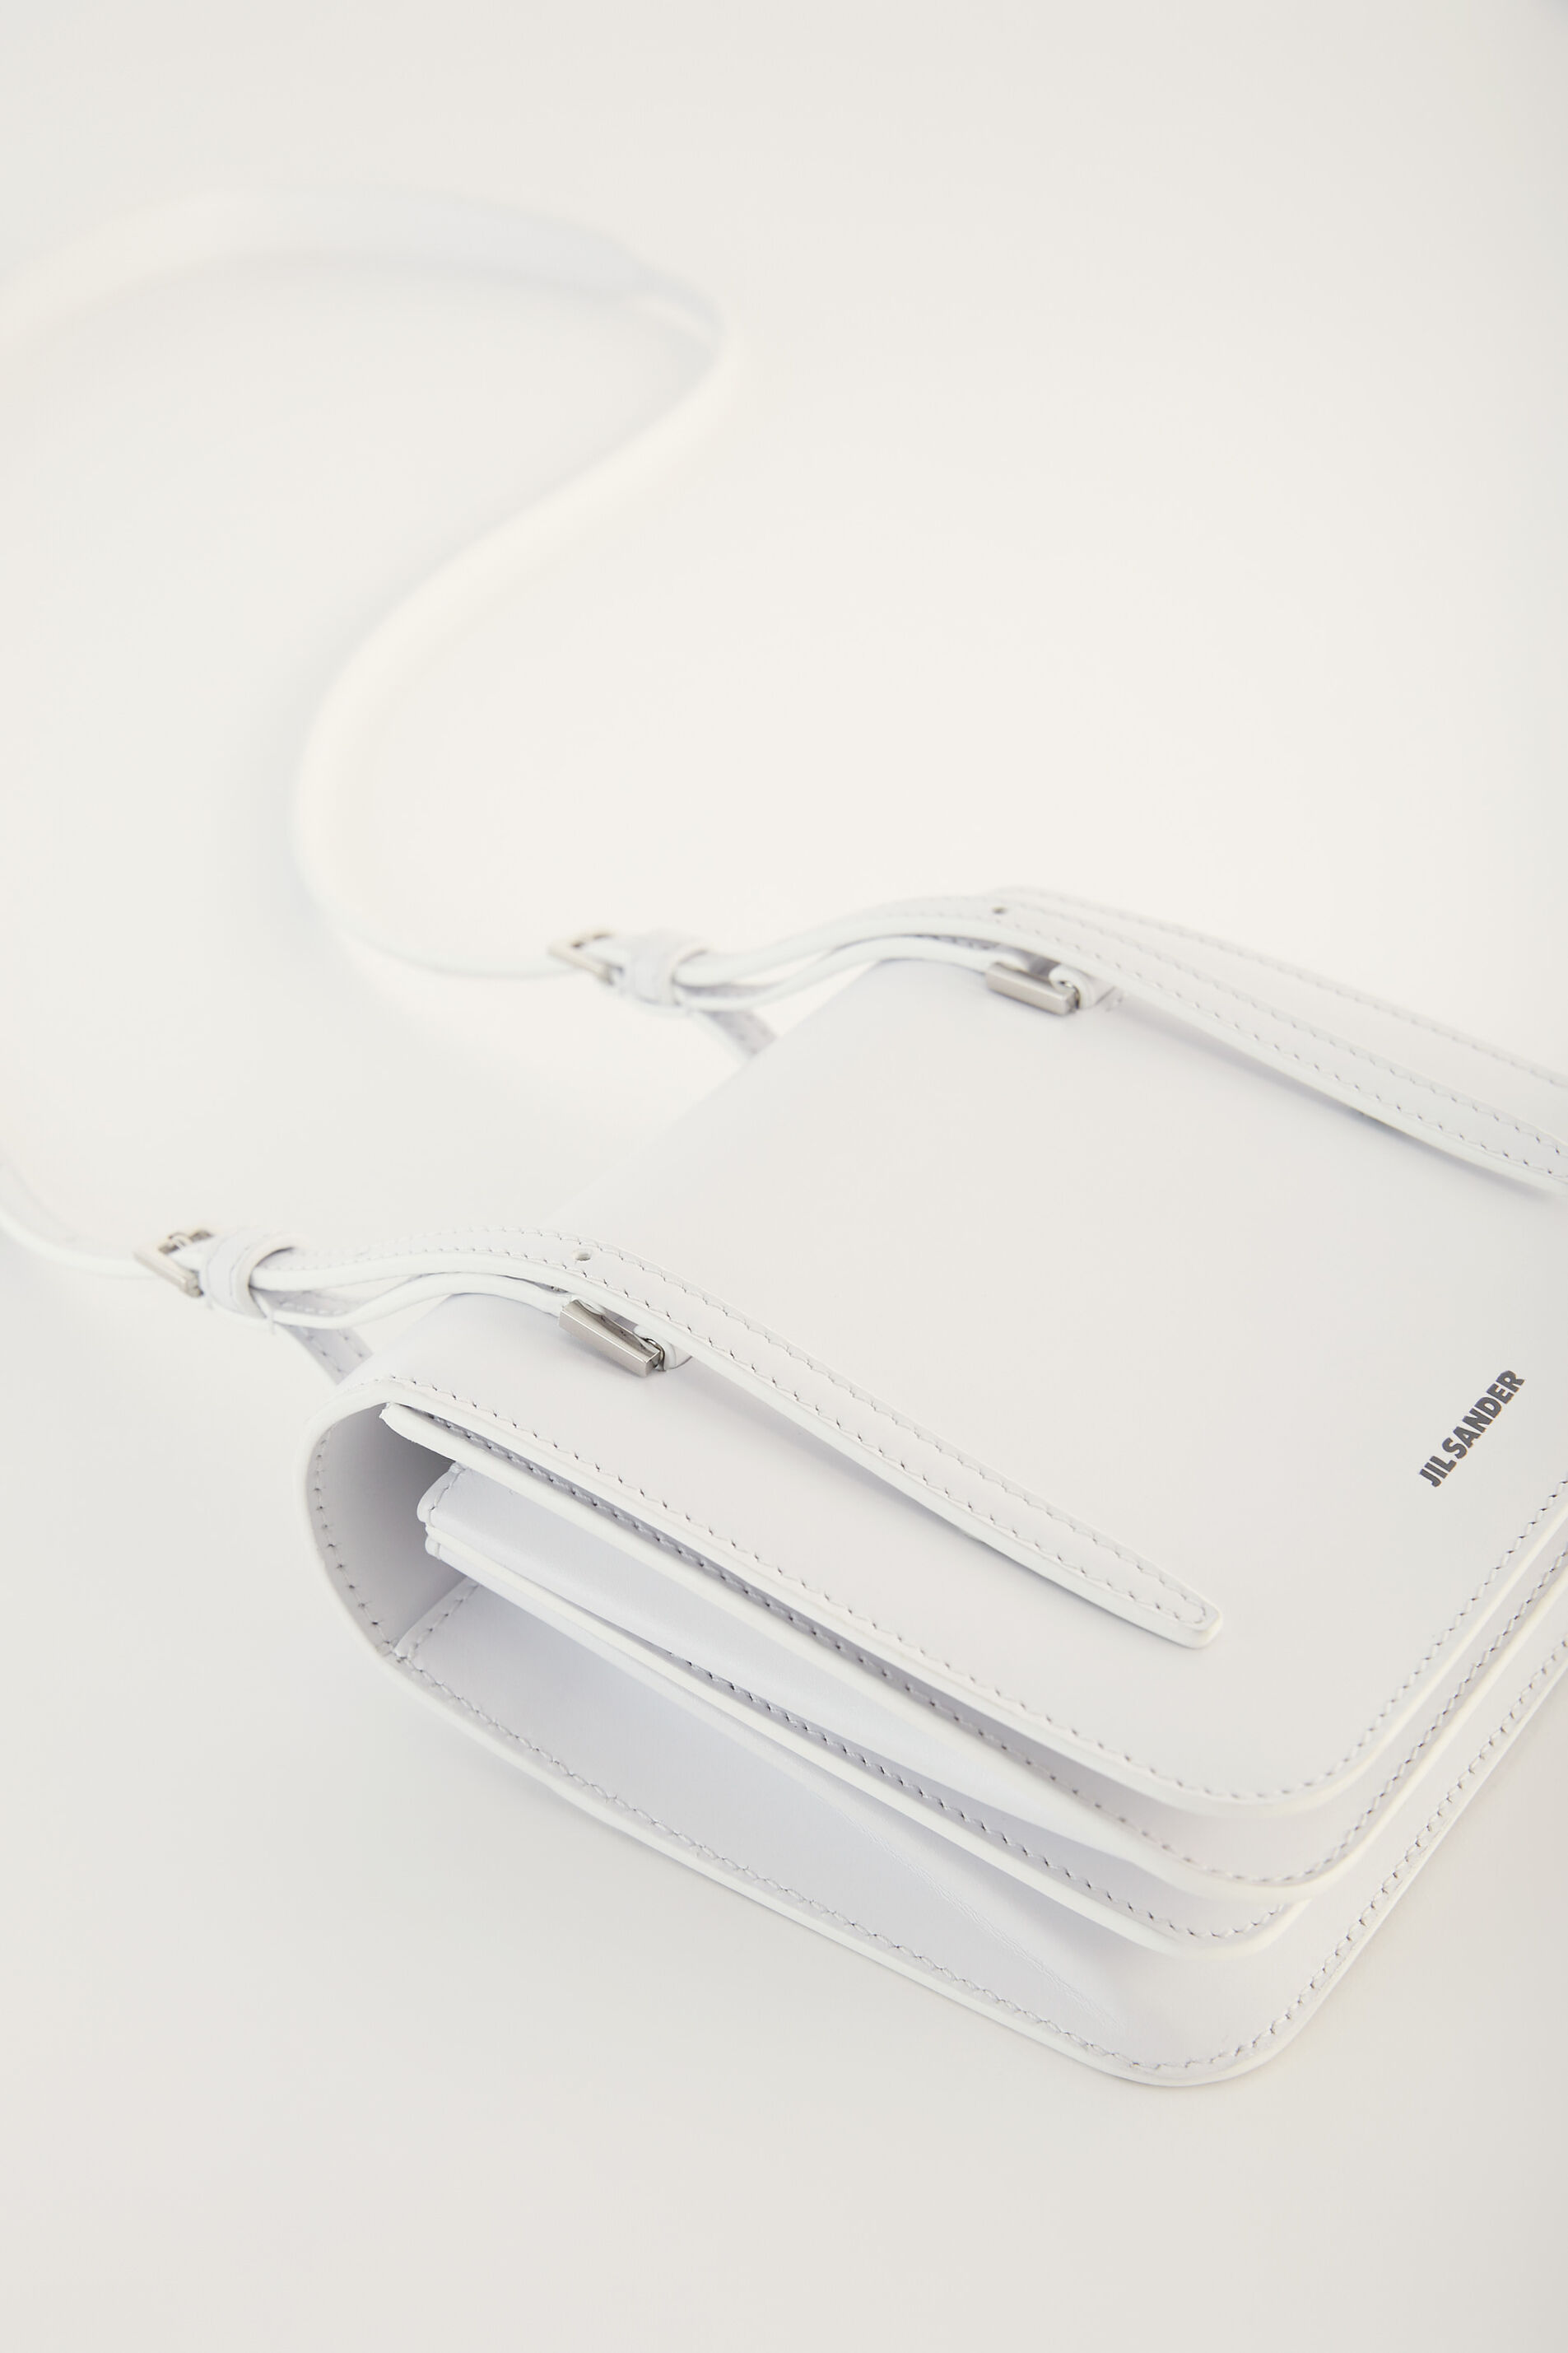 Shoulder Bag Mini, white, large